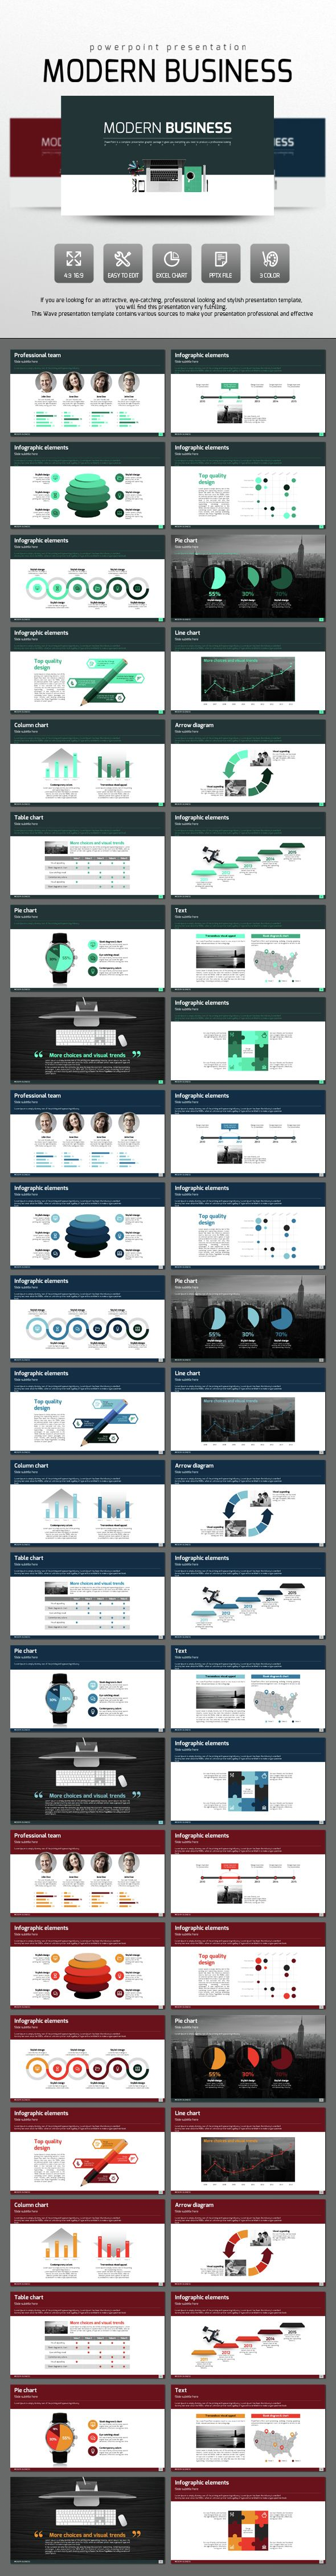 Modern Business (PowerPoint Templates)